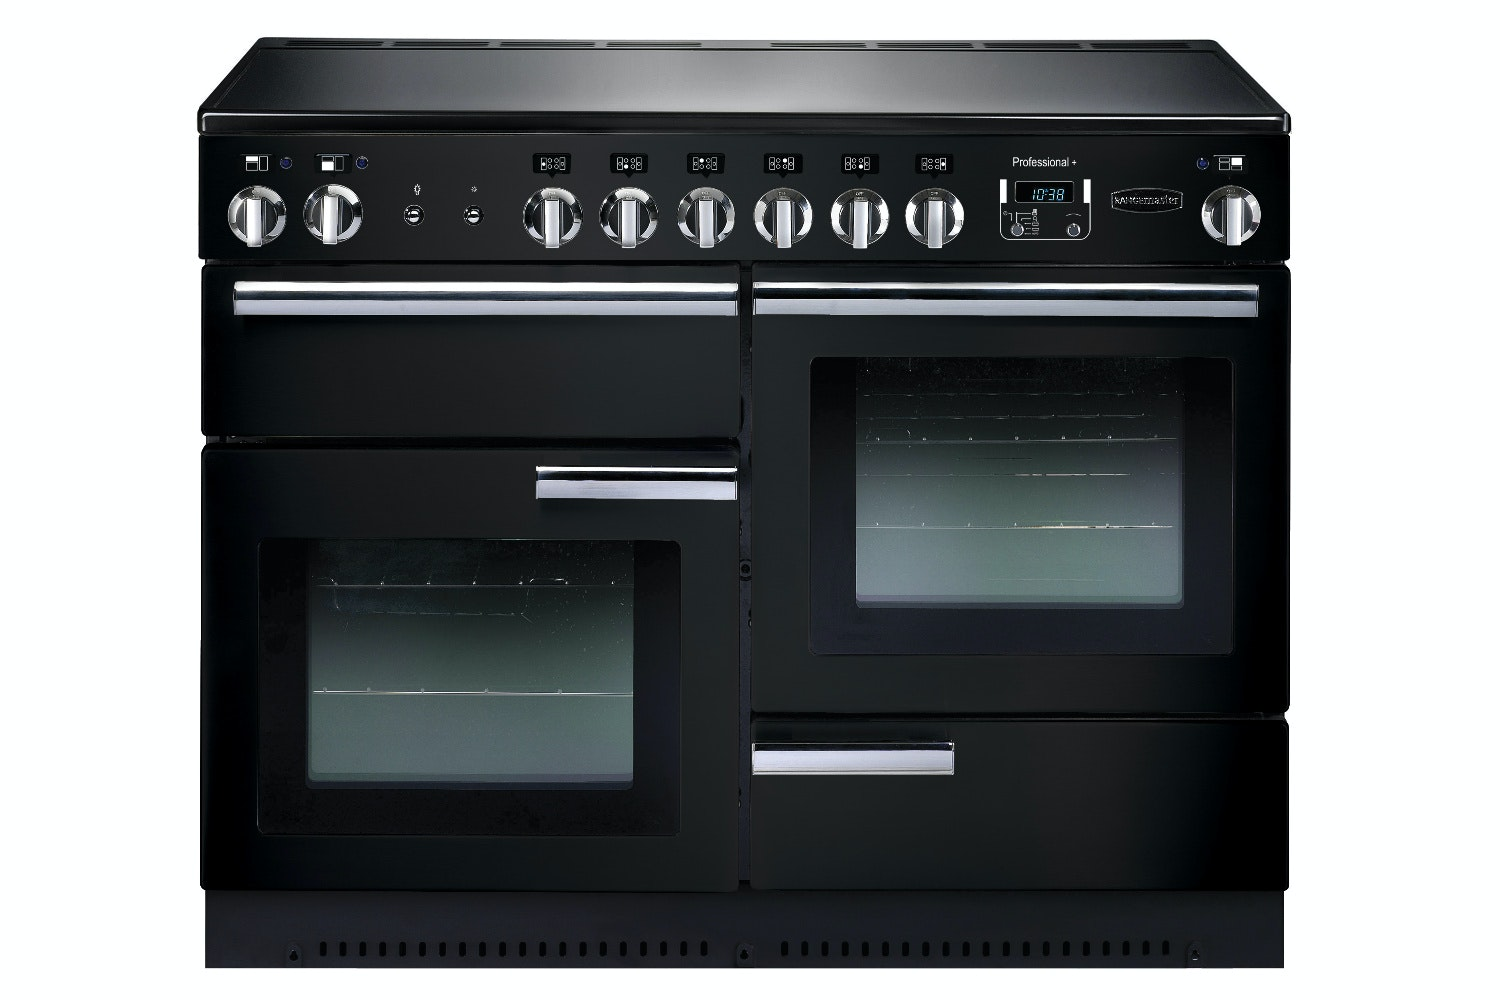 Rangemaster Pro Plus 110cm Electric Range Cooker | PROP110ECGB/C | Black